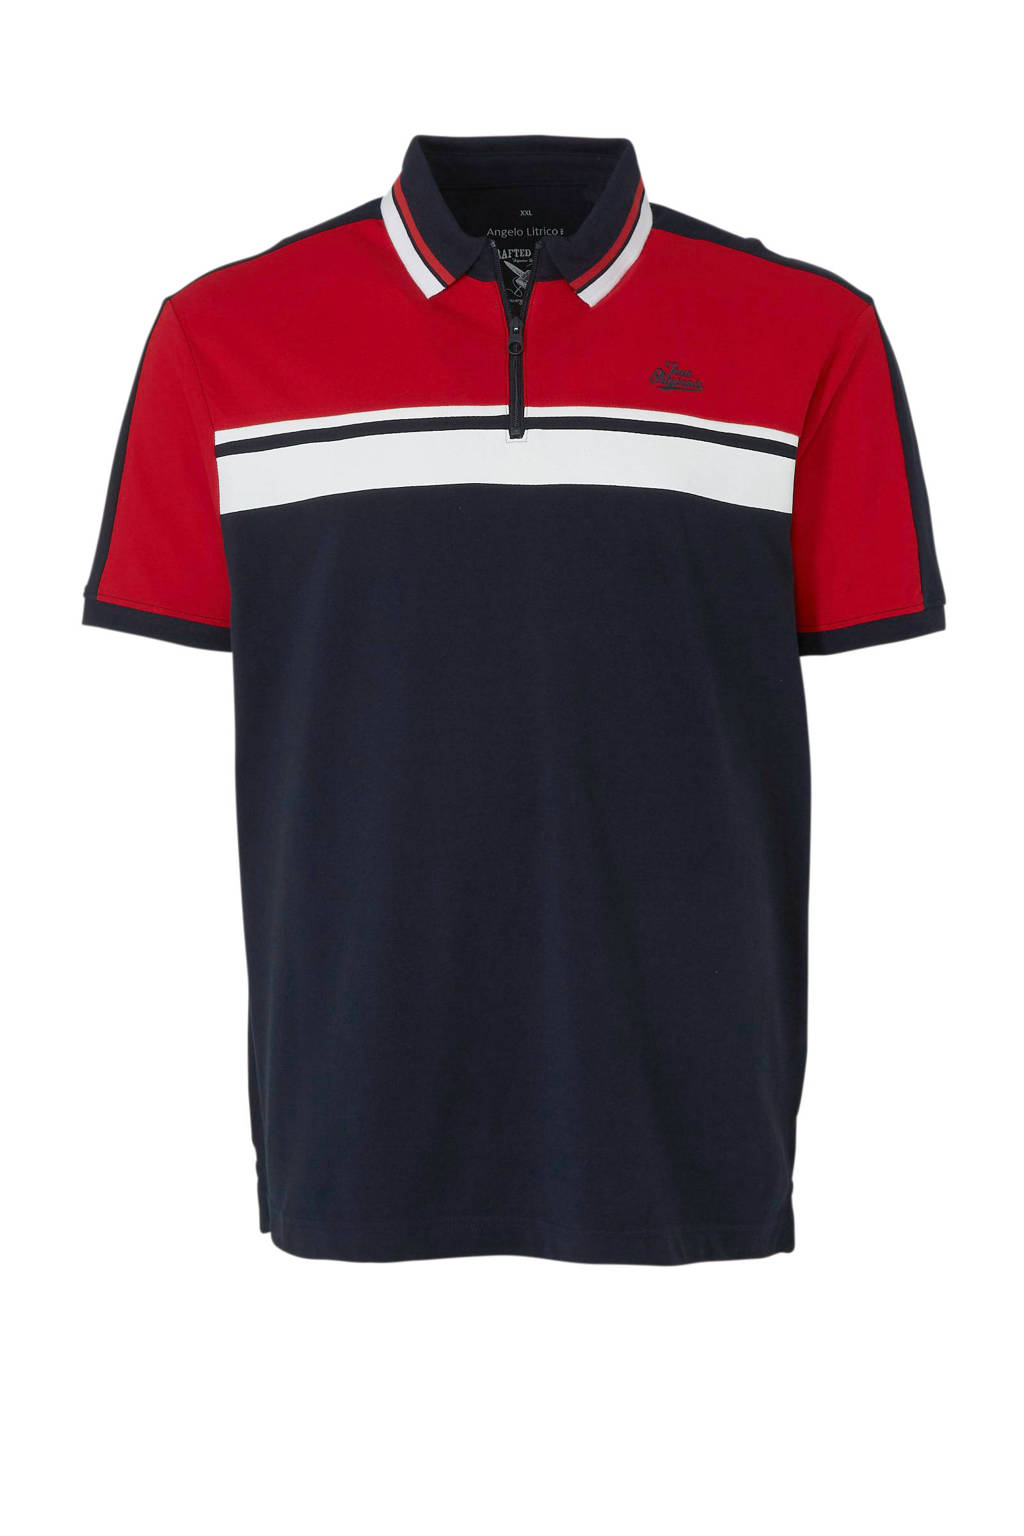 C&A XL Angelo Litrico polo marine, Marine/rood/wit